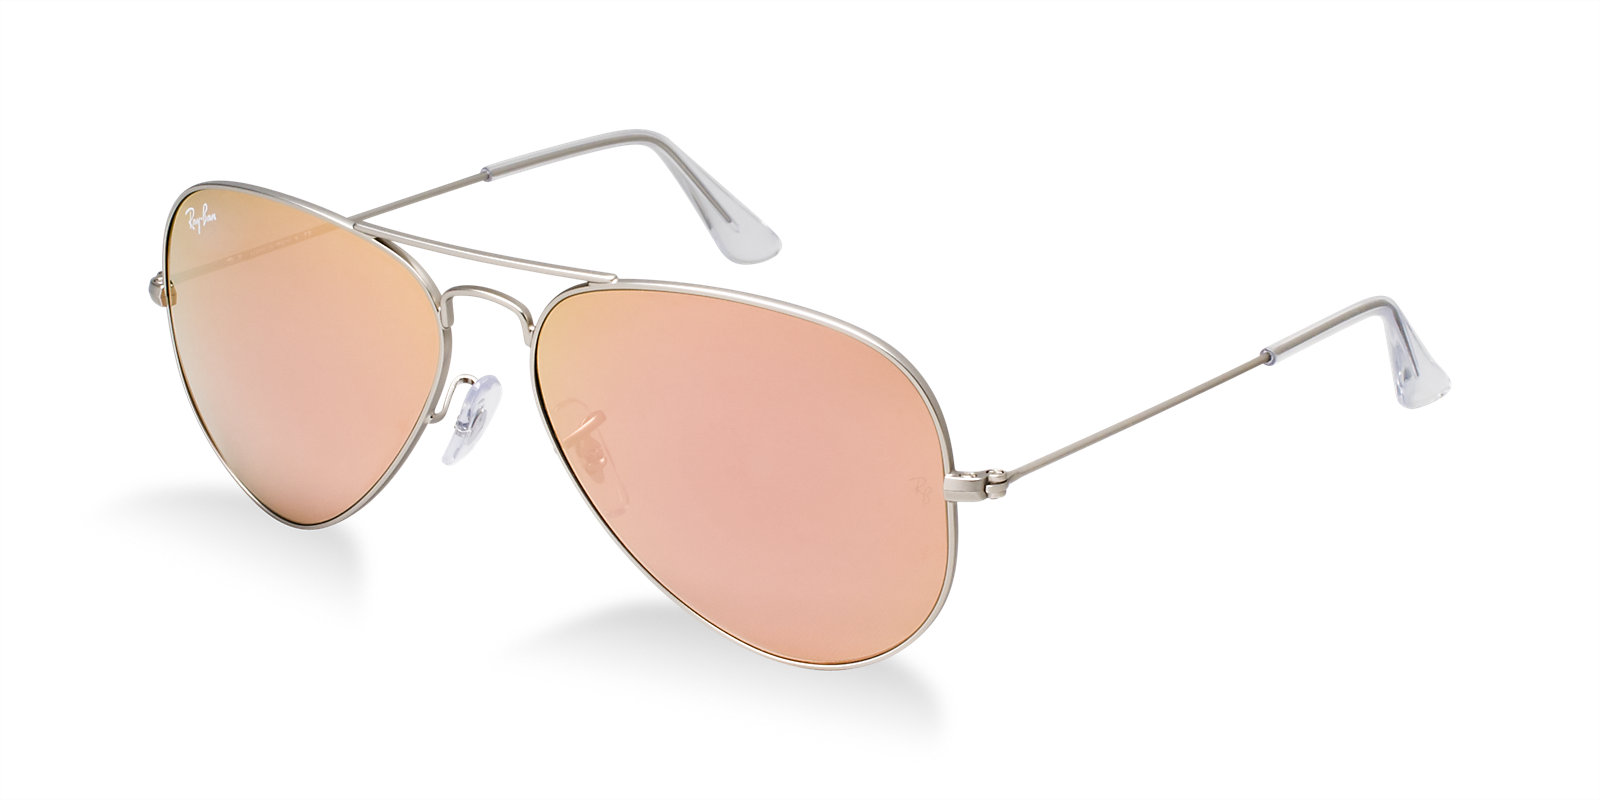 rb3025 019Z2 matte silver pink mirror angle. Previous  Next. Previous   Next. RAY-BAN RB3025 019 Z2 FLASH MIRROR AVIATOR SUNGLASSES cc04d9c8a249